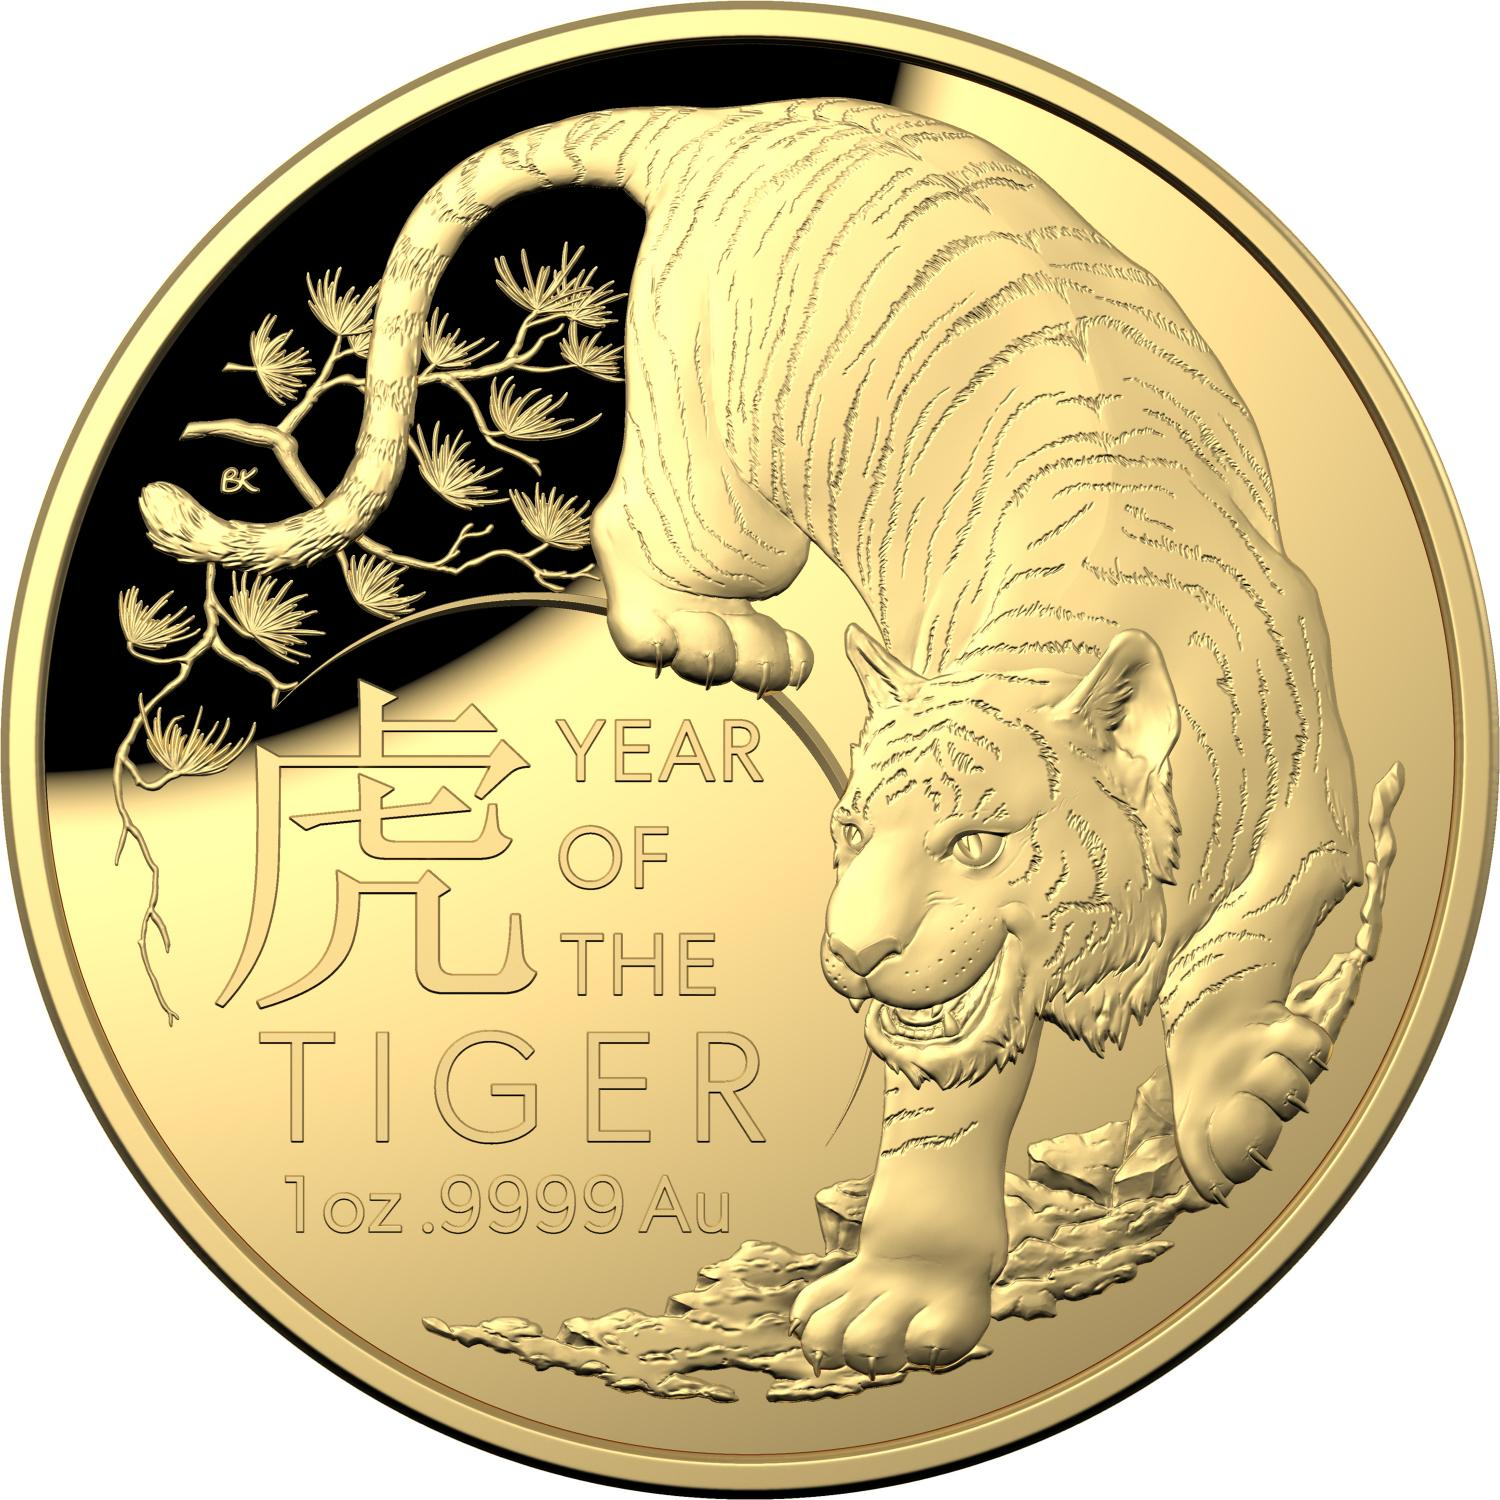 Thumbnail for 2022 $100 Gold Domed Year of Tiger Proof Coin